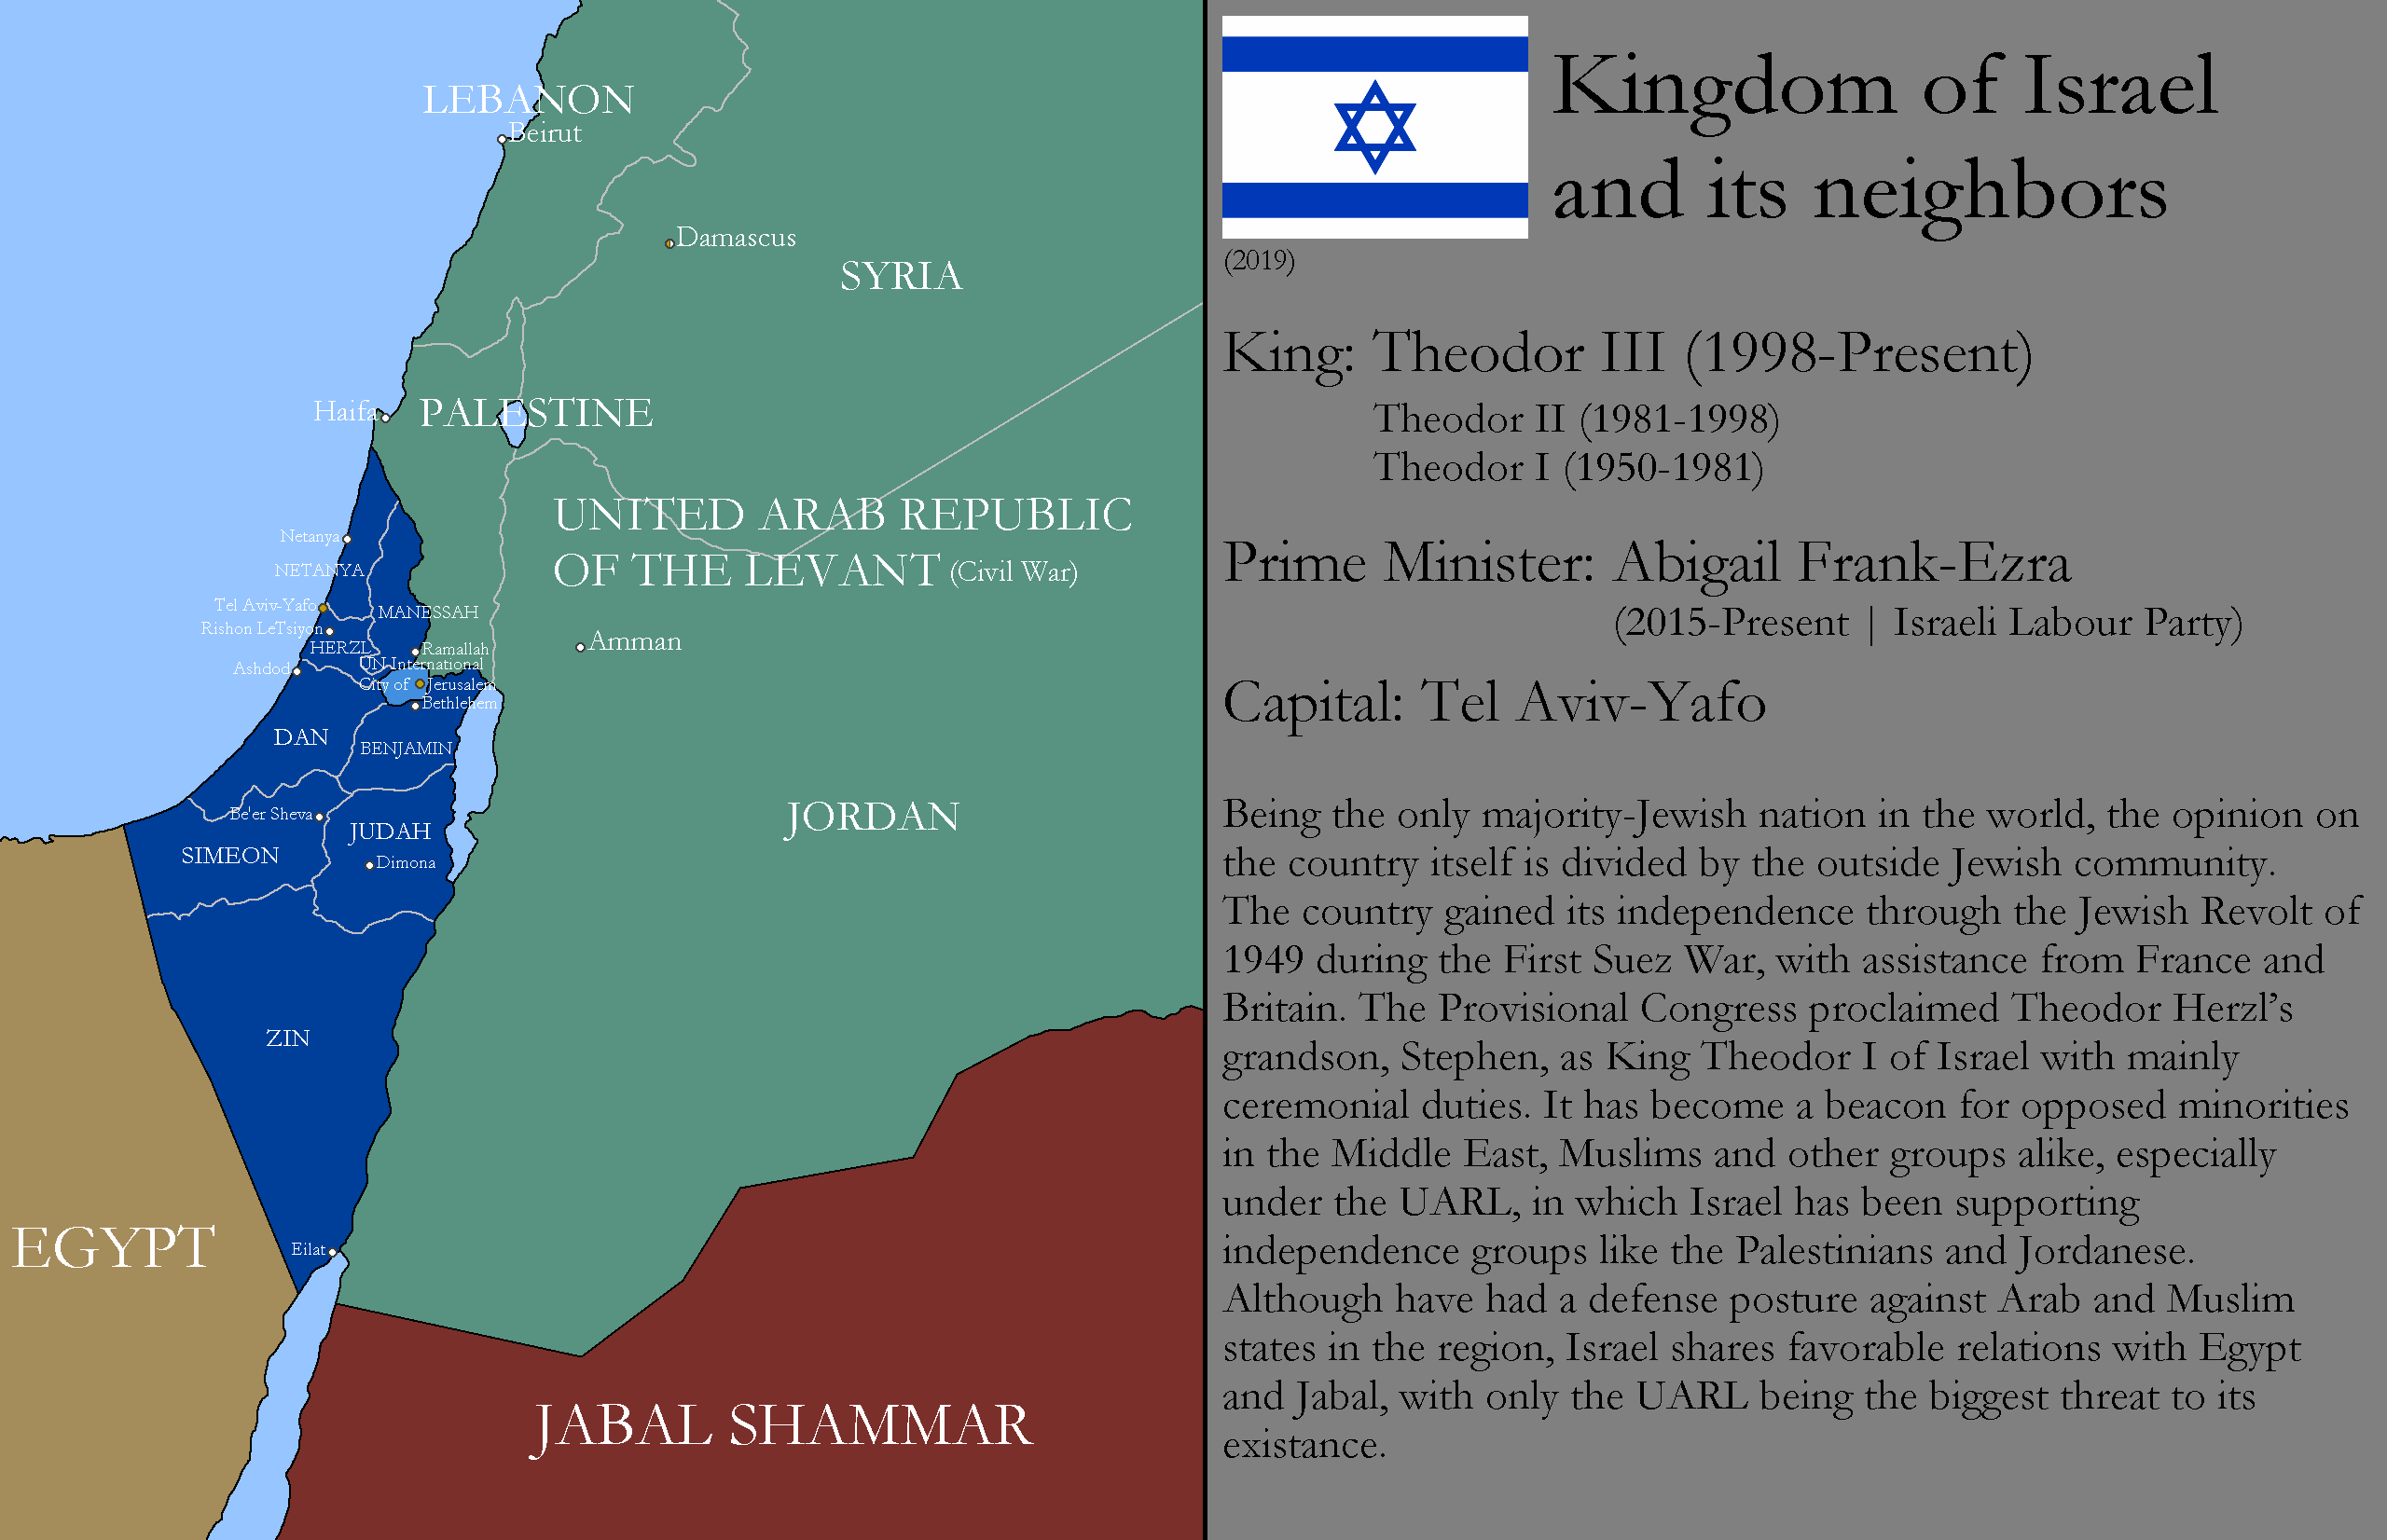 Kingdom of Israel and its neighbors.png